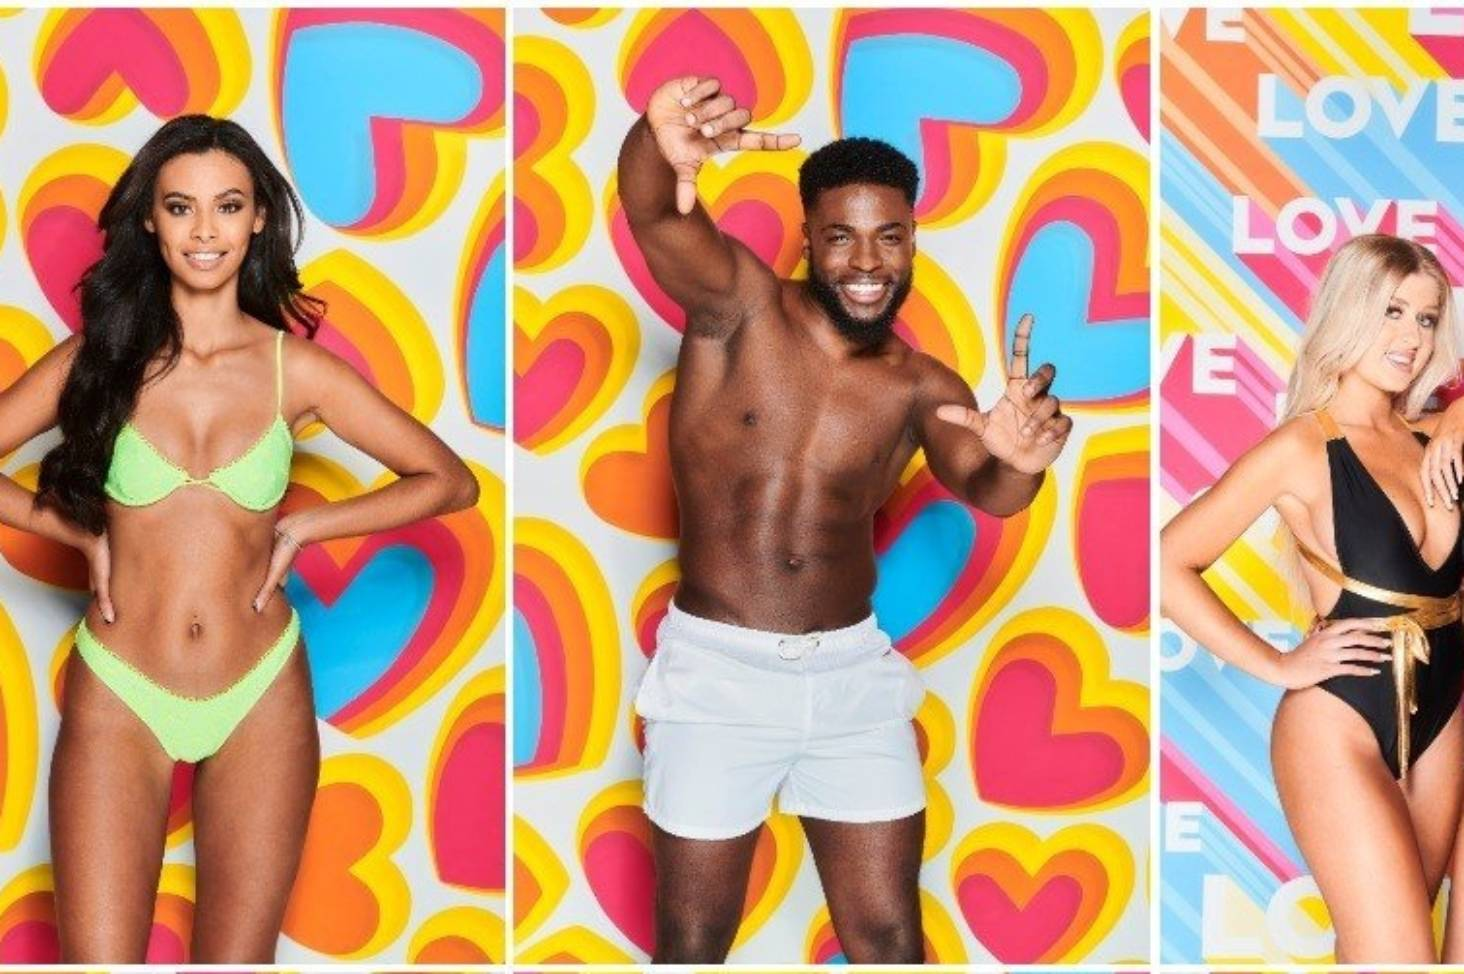 Love Island UK is coming back but you'll have to pay to see it on NEON